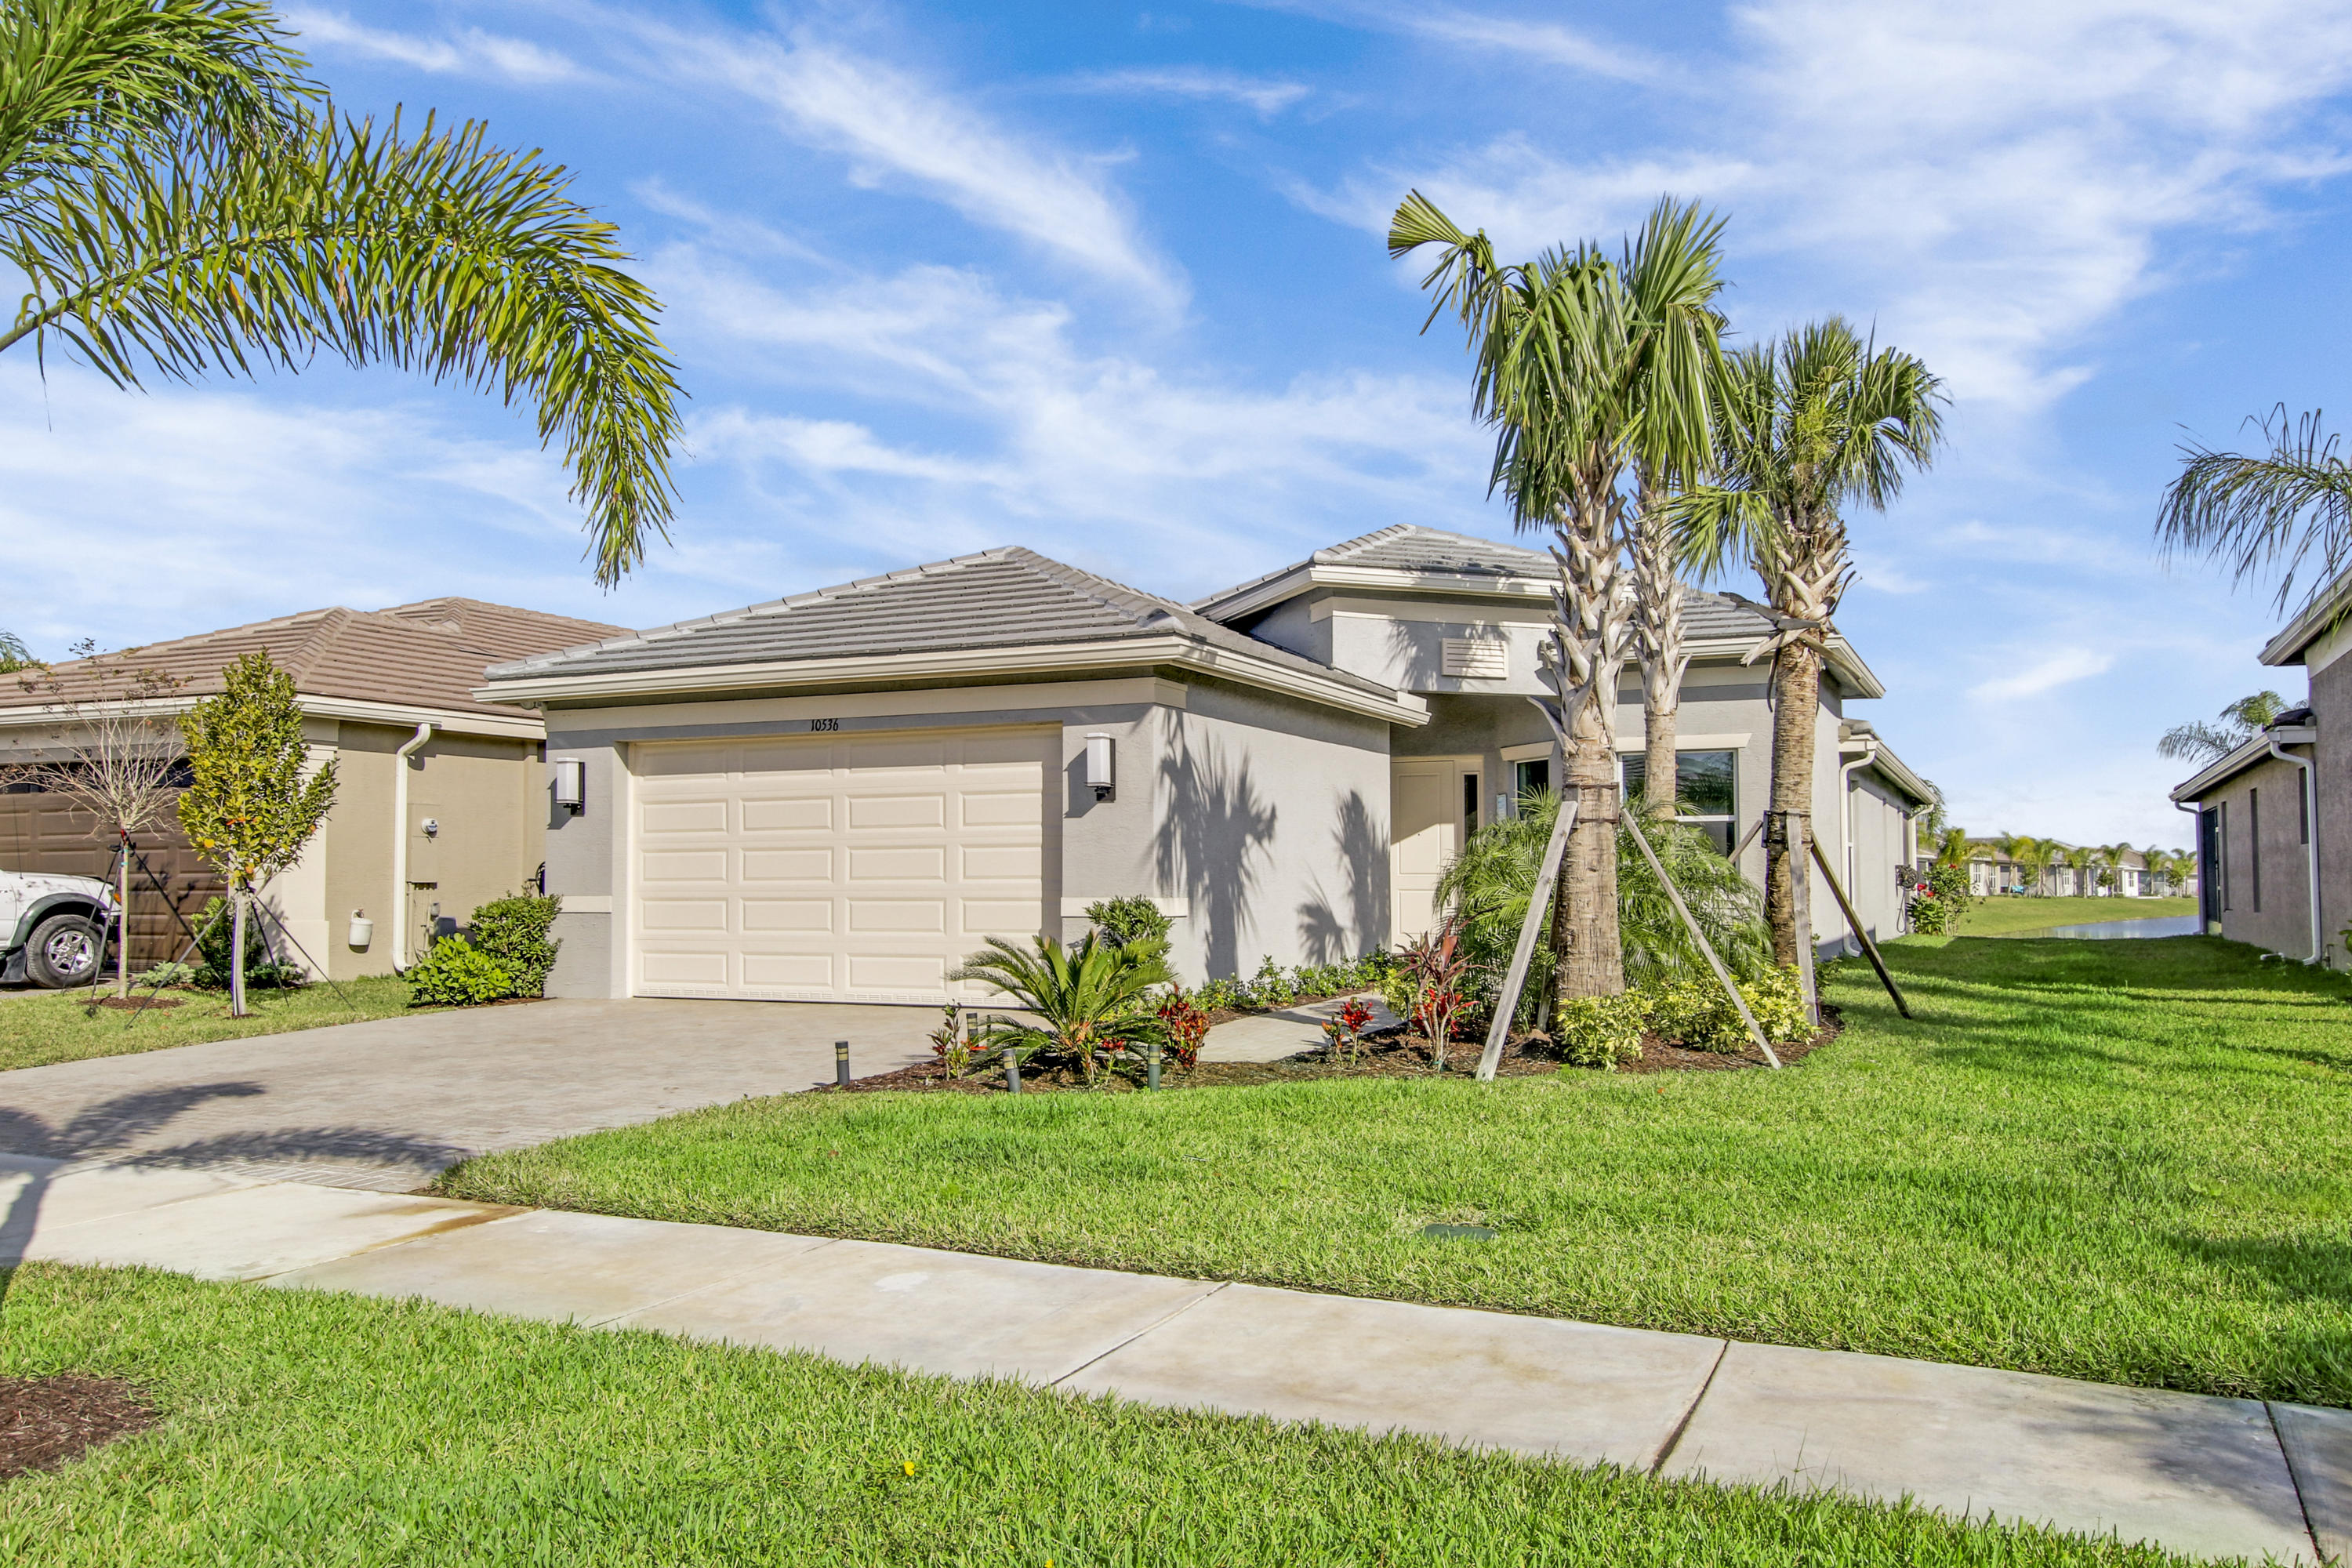 Home for sale in Valencia Cay Port Saint Lucie Florida